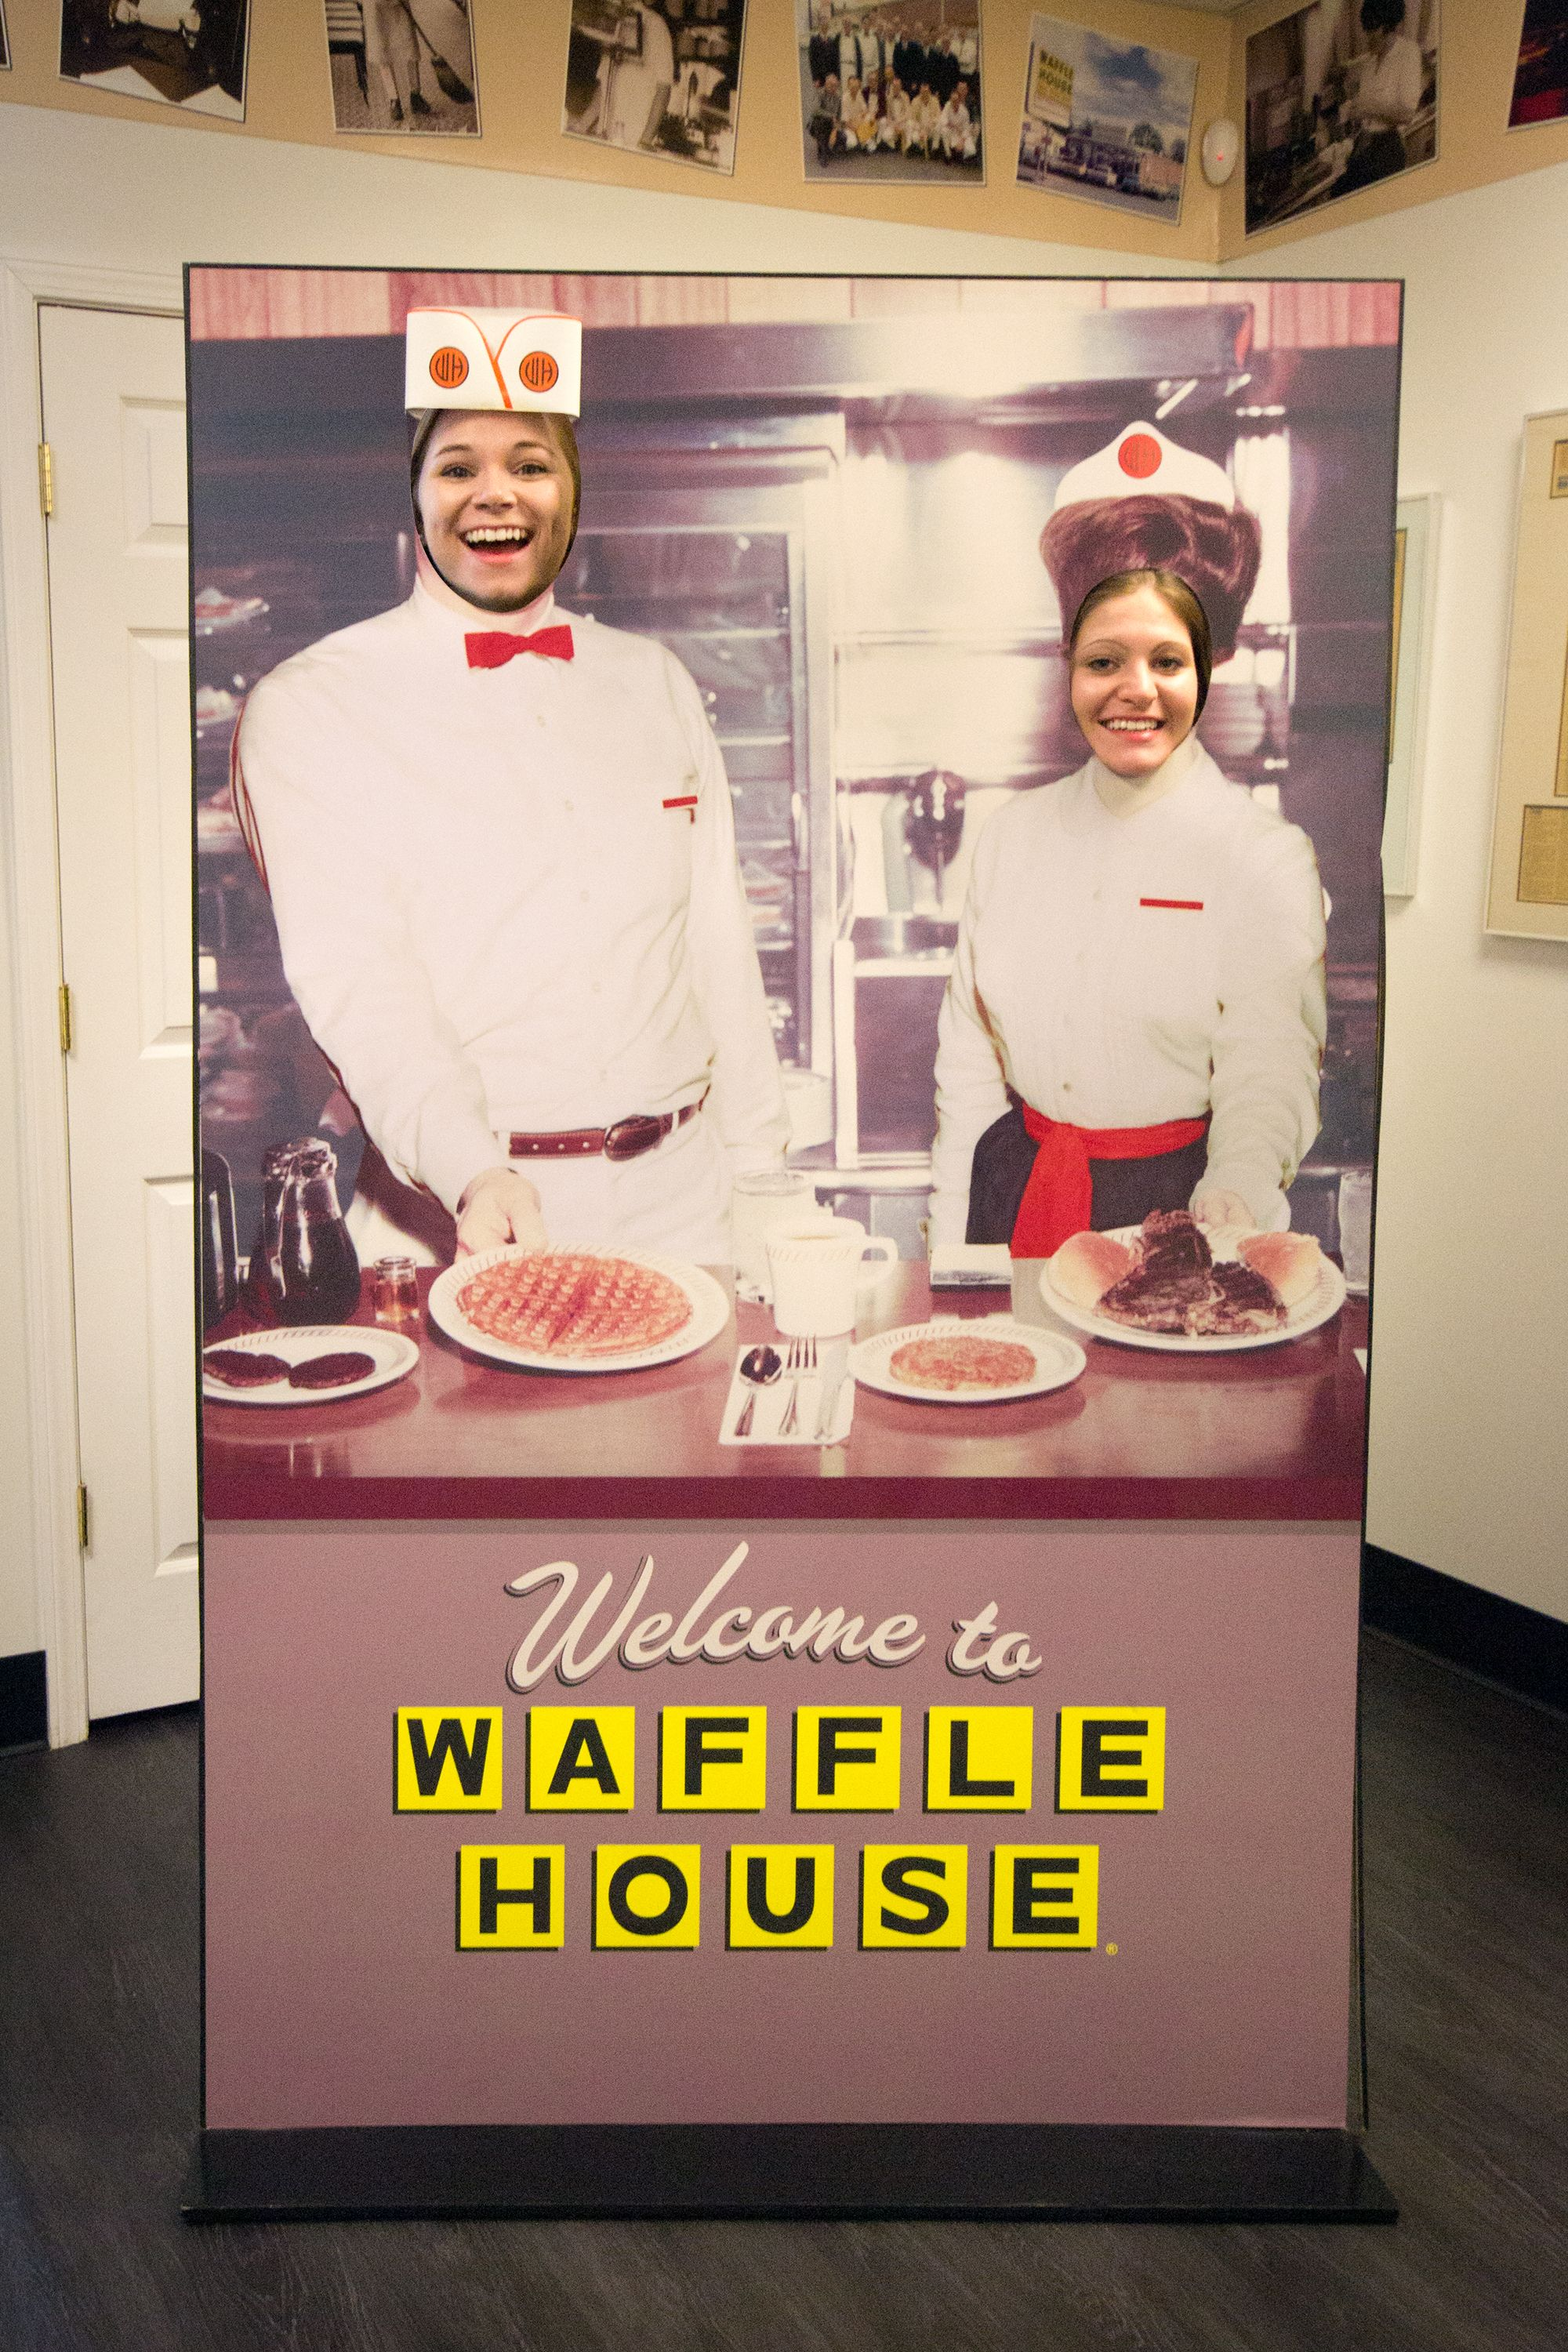 Posing with the Waffle House novelty sign.